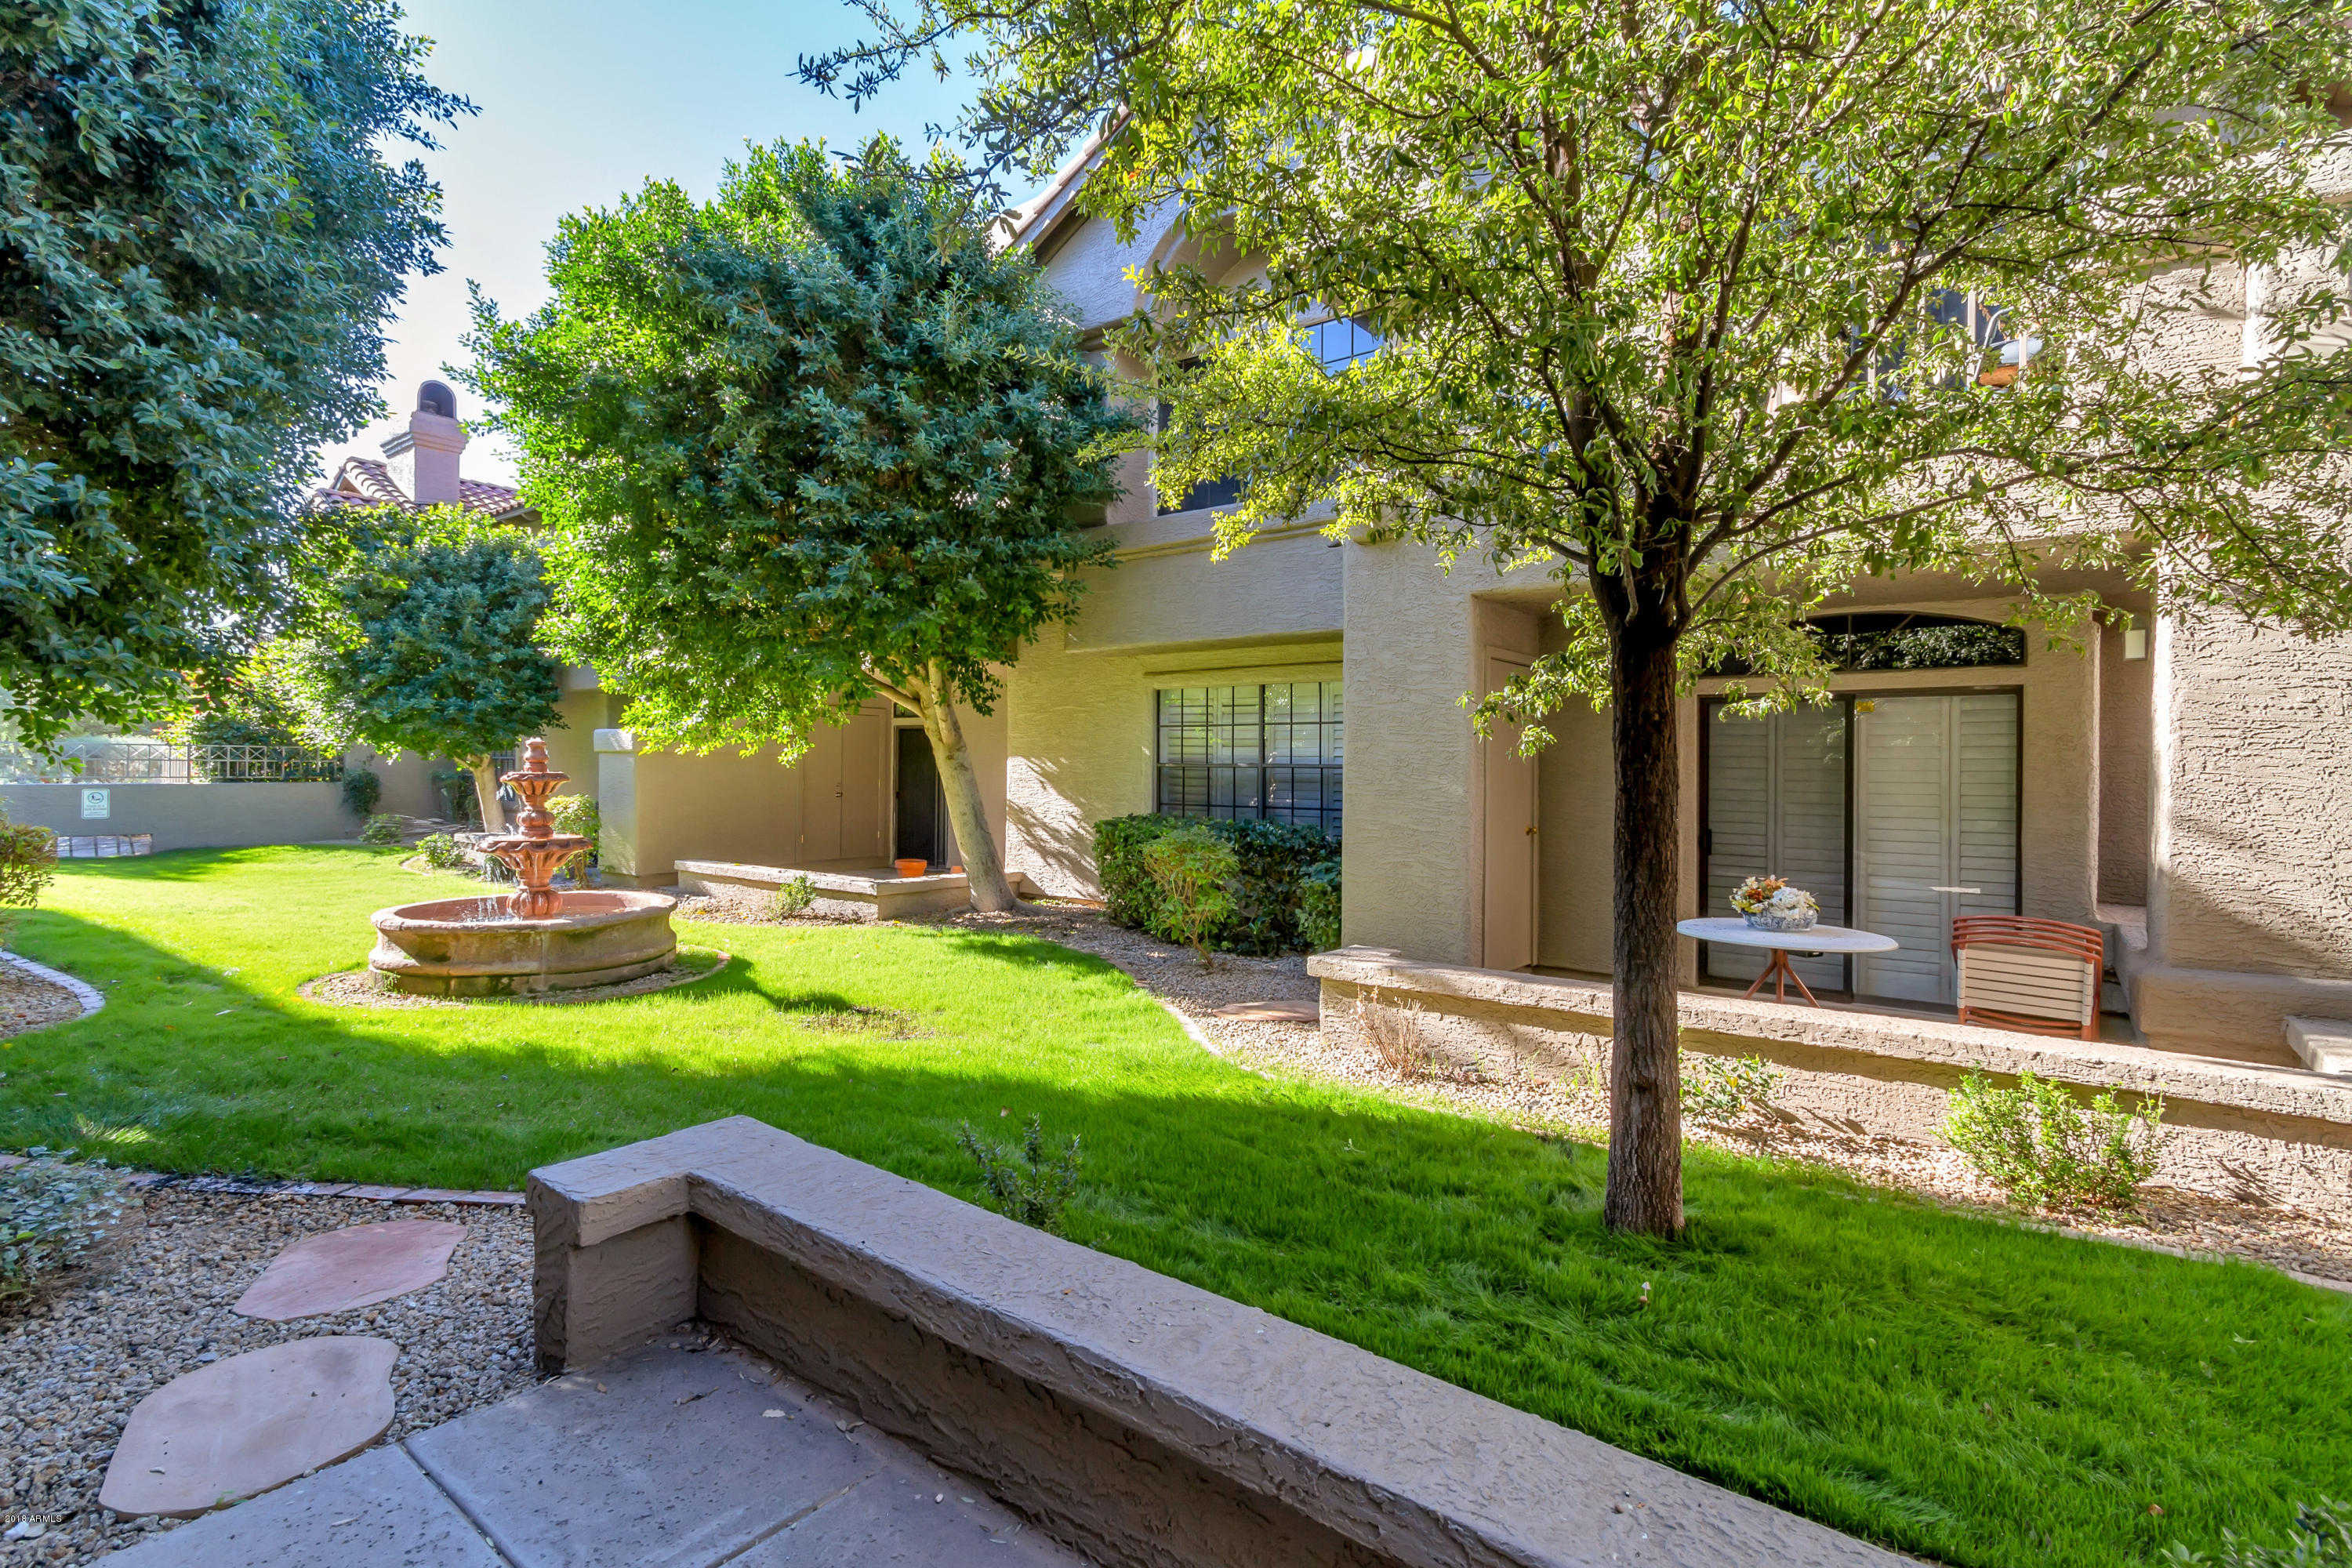 $255,000 - 2Br/2Ba -  for Sale in Fountains Unit 1-160, Scottsdale